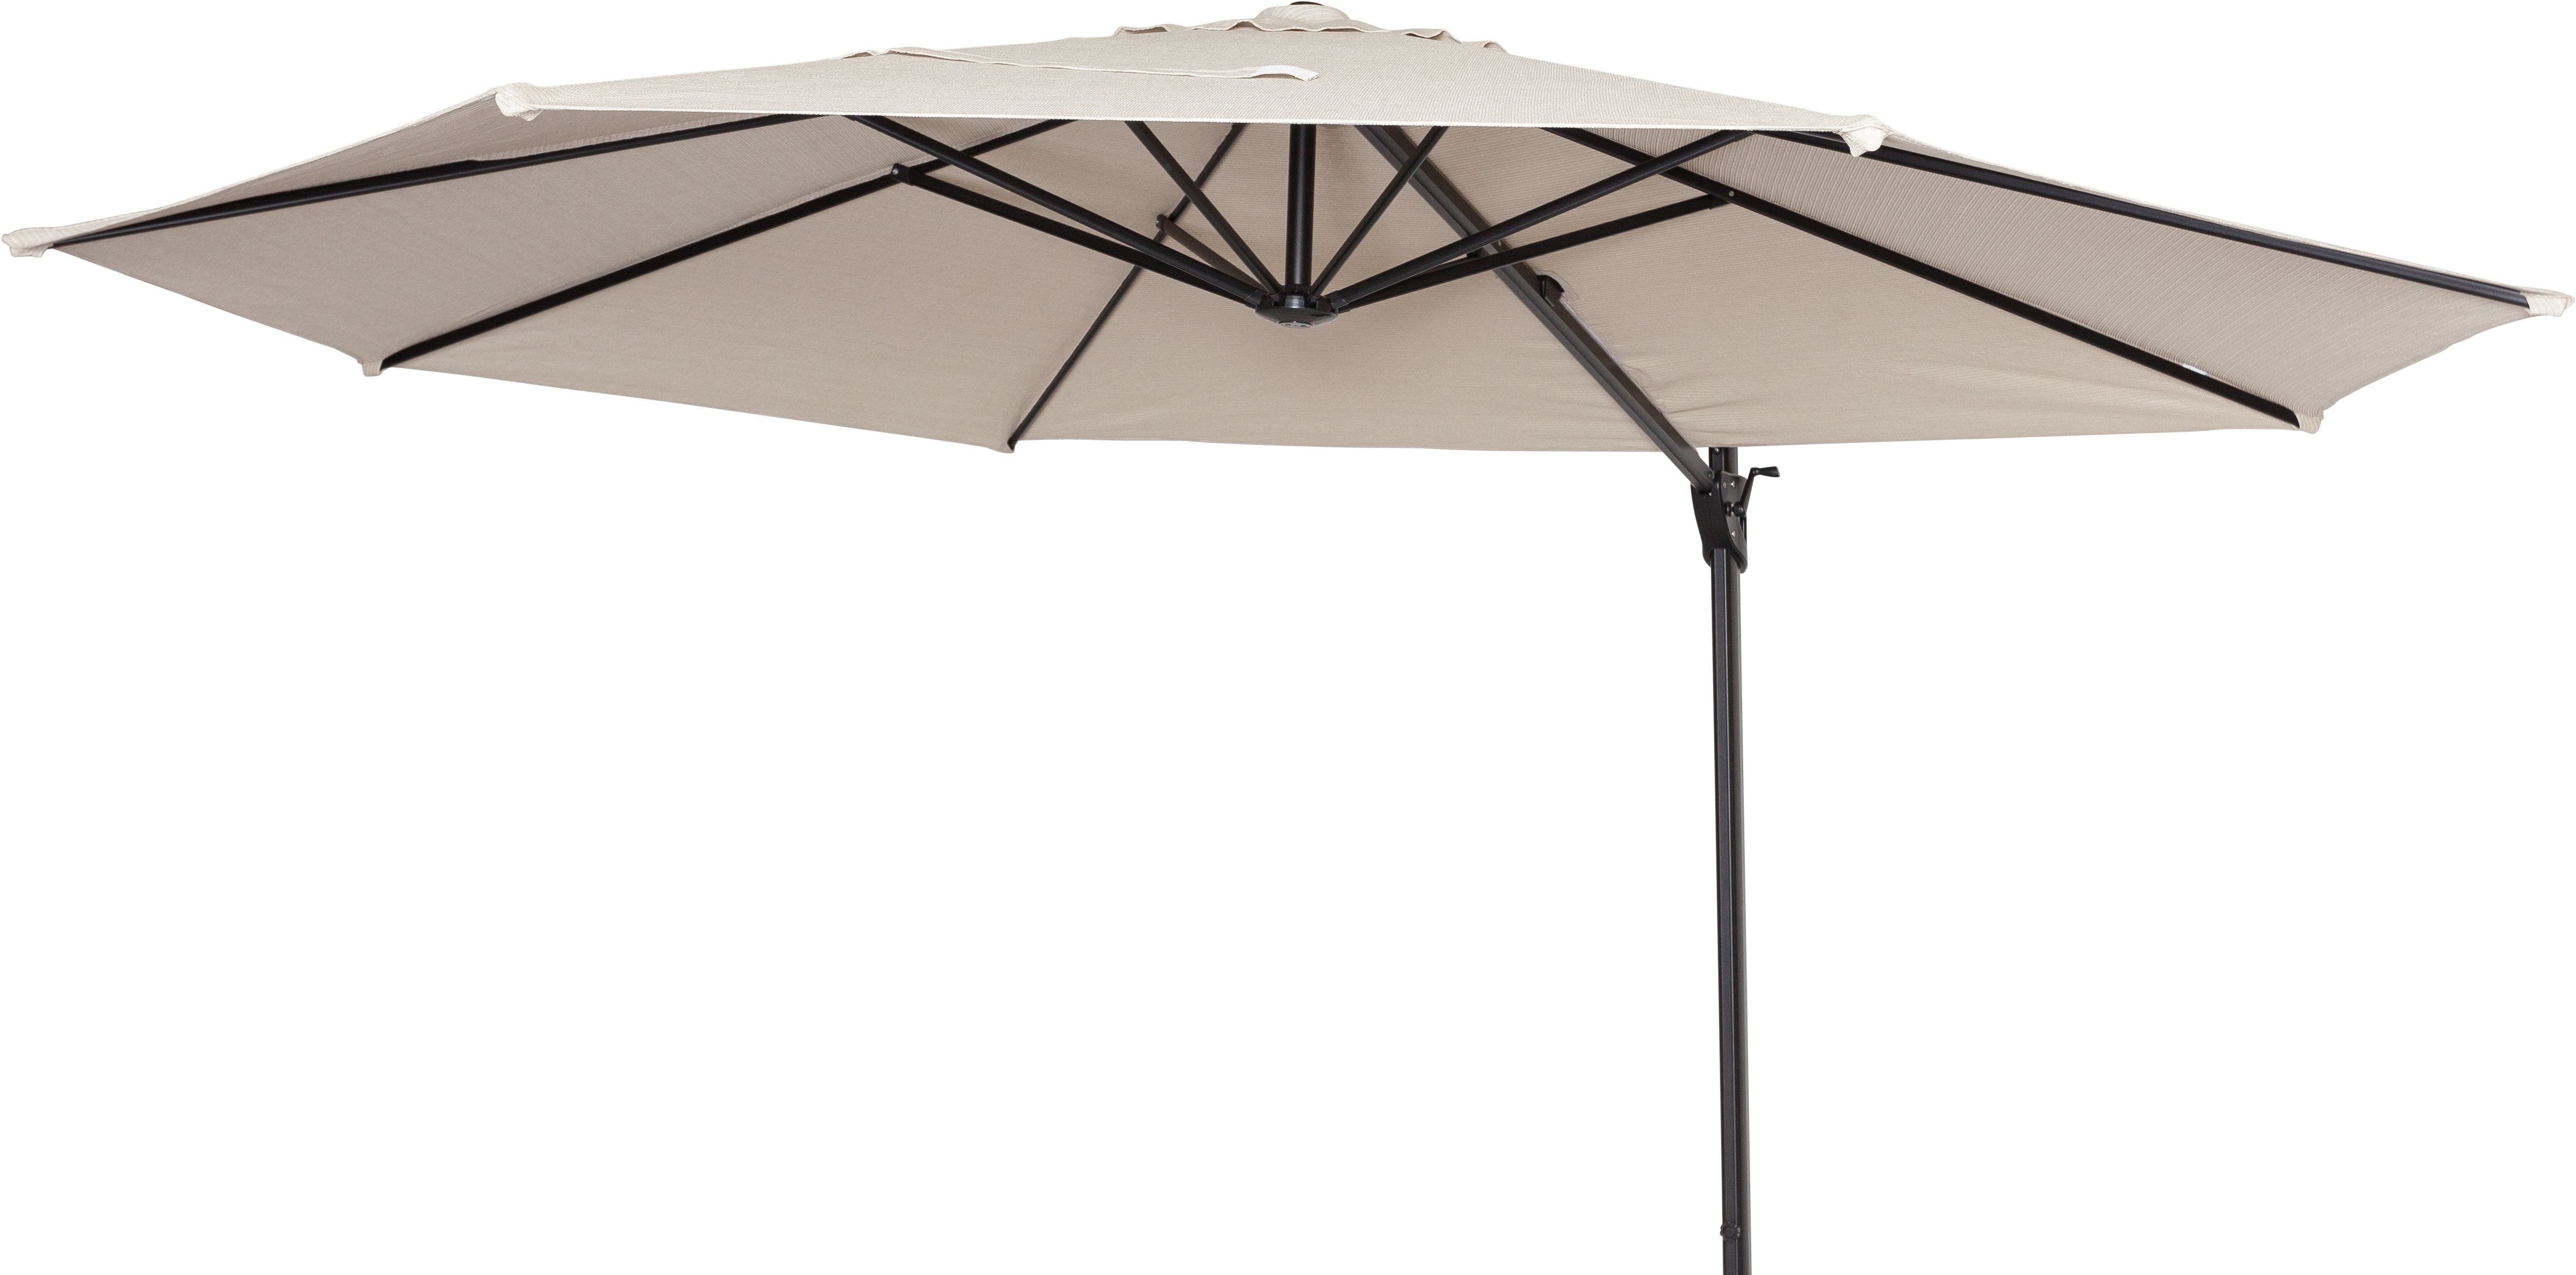 Emely Cantilever Sunbrella Umbrellas Within Well Liked Coolaroo 12' Cantilever Umbrella (Gallery 20 of 20)